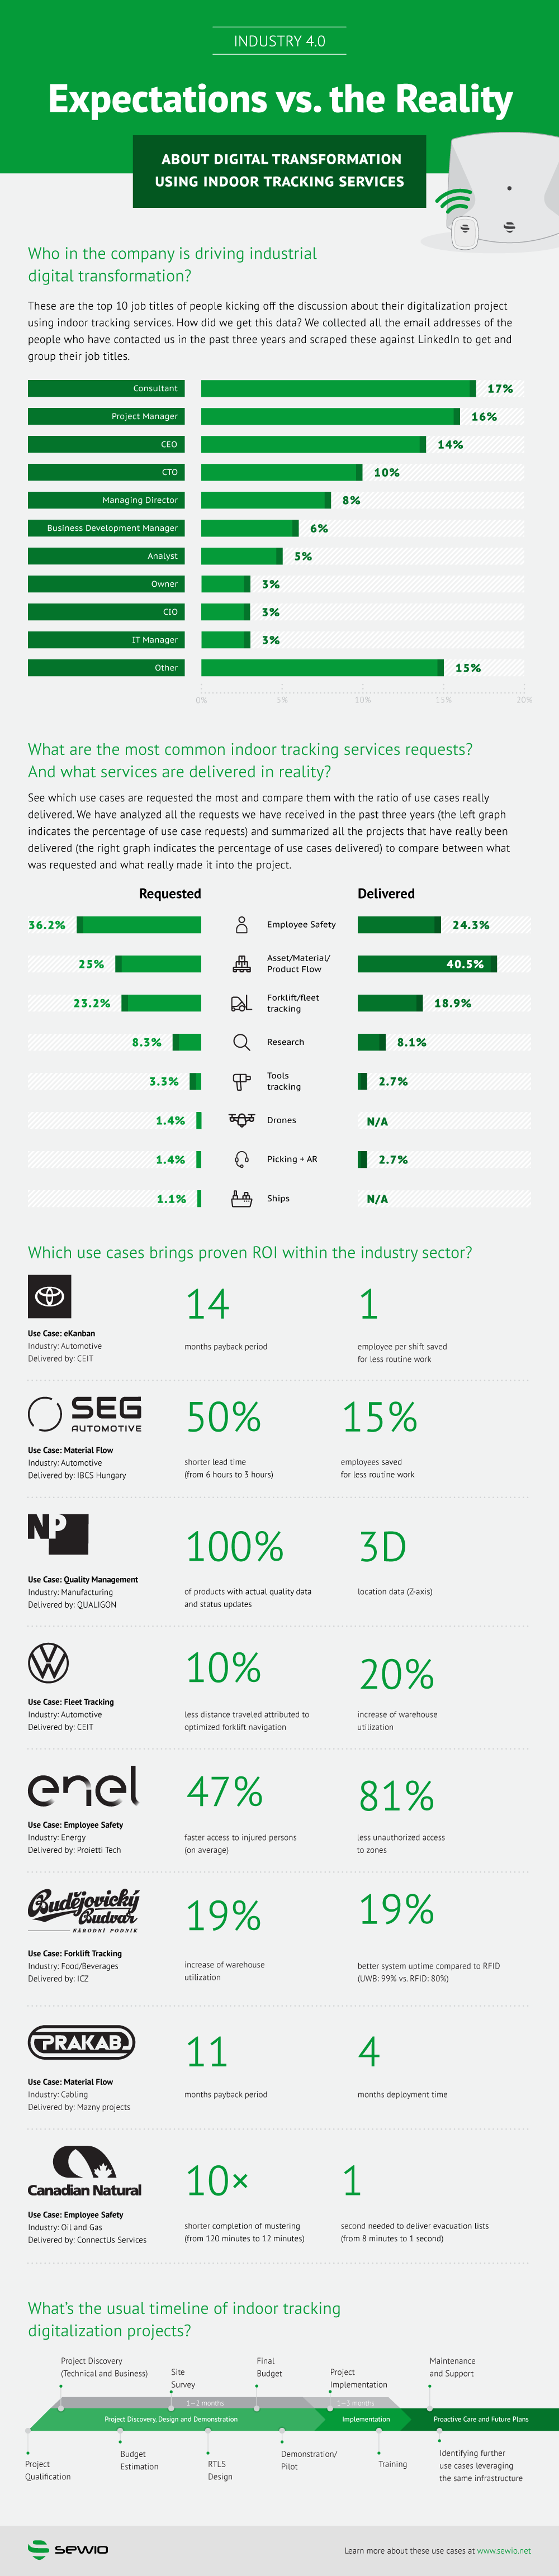 Leveraging Indoor Location Systems for Digitalization: Expectations vs. Reality (infographic)